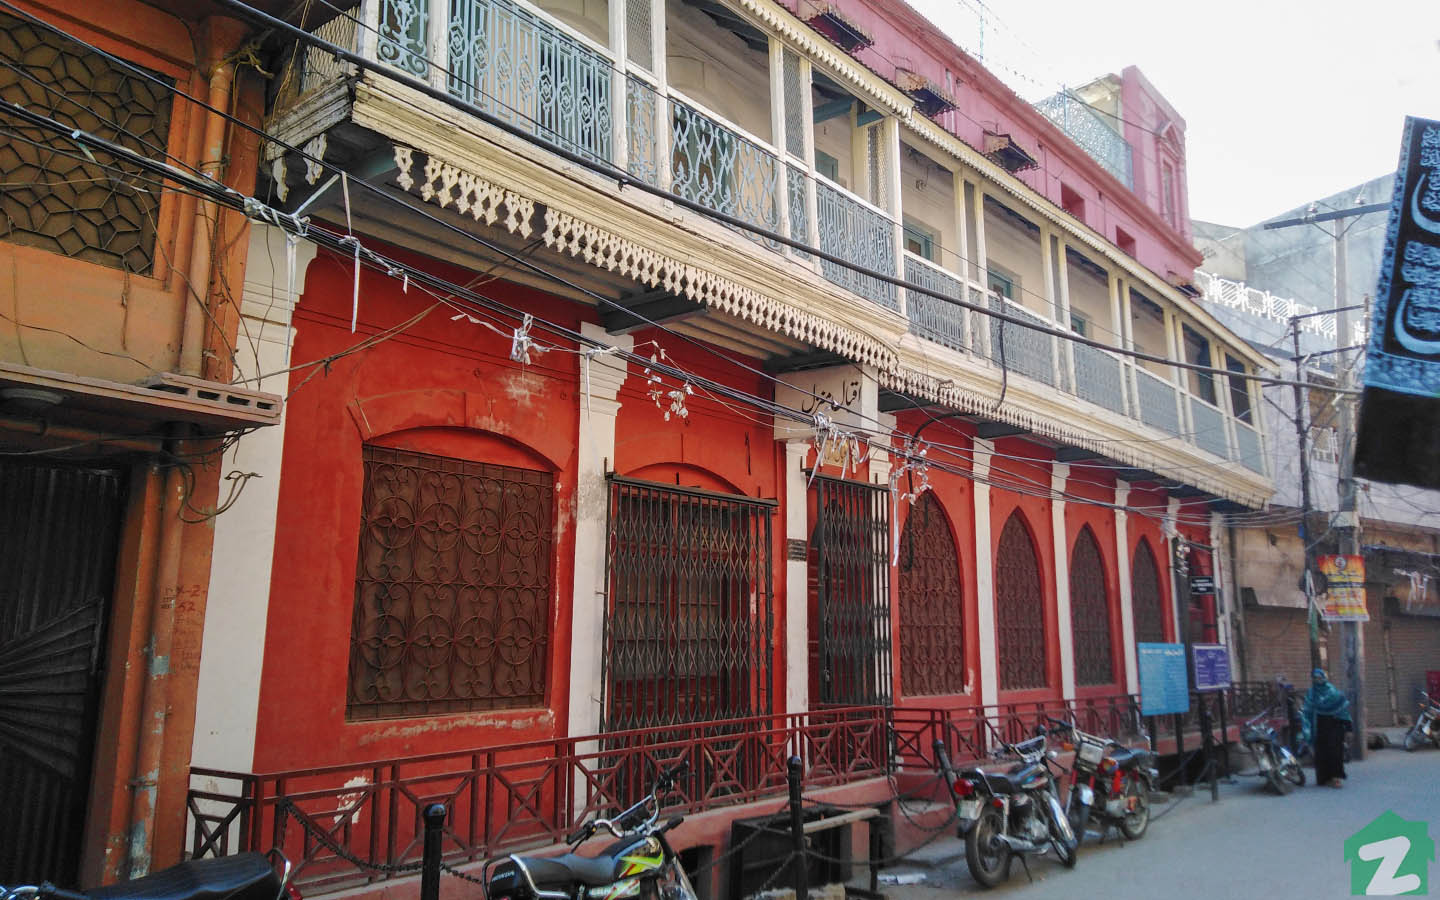 Iqbal Manzil was first bought in 1861 by Allama Iqbal's grandfather.